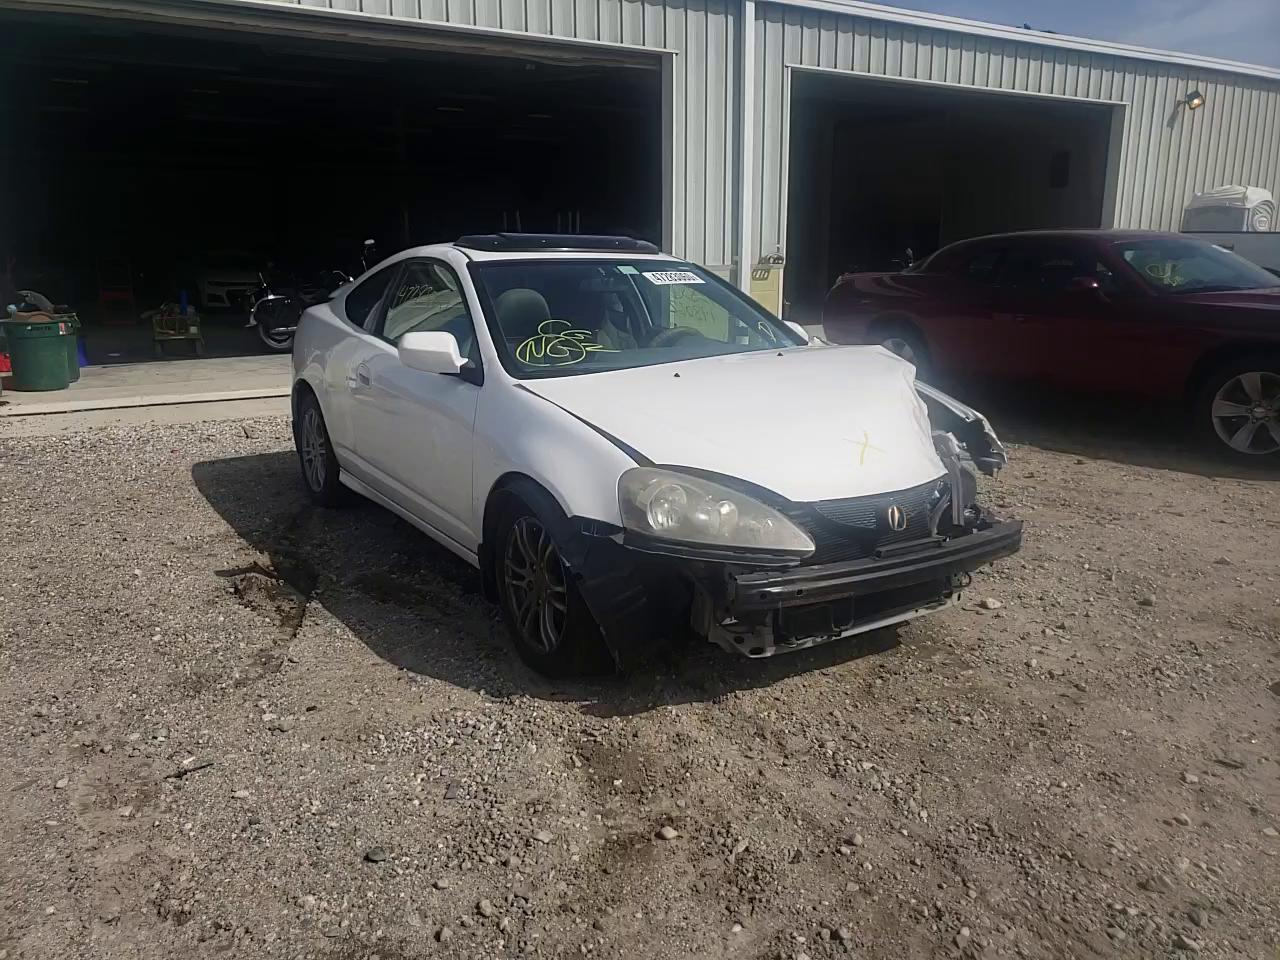 Acura RSX salvage cars for sale: 2005 Acura RSX